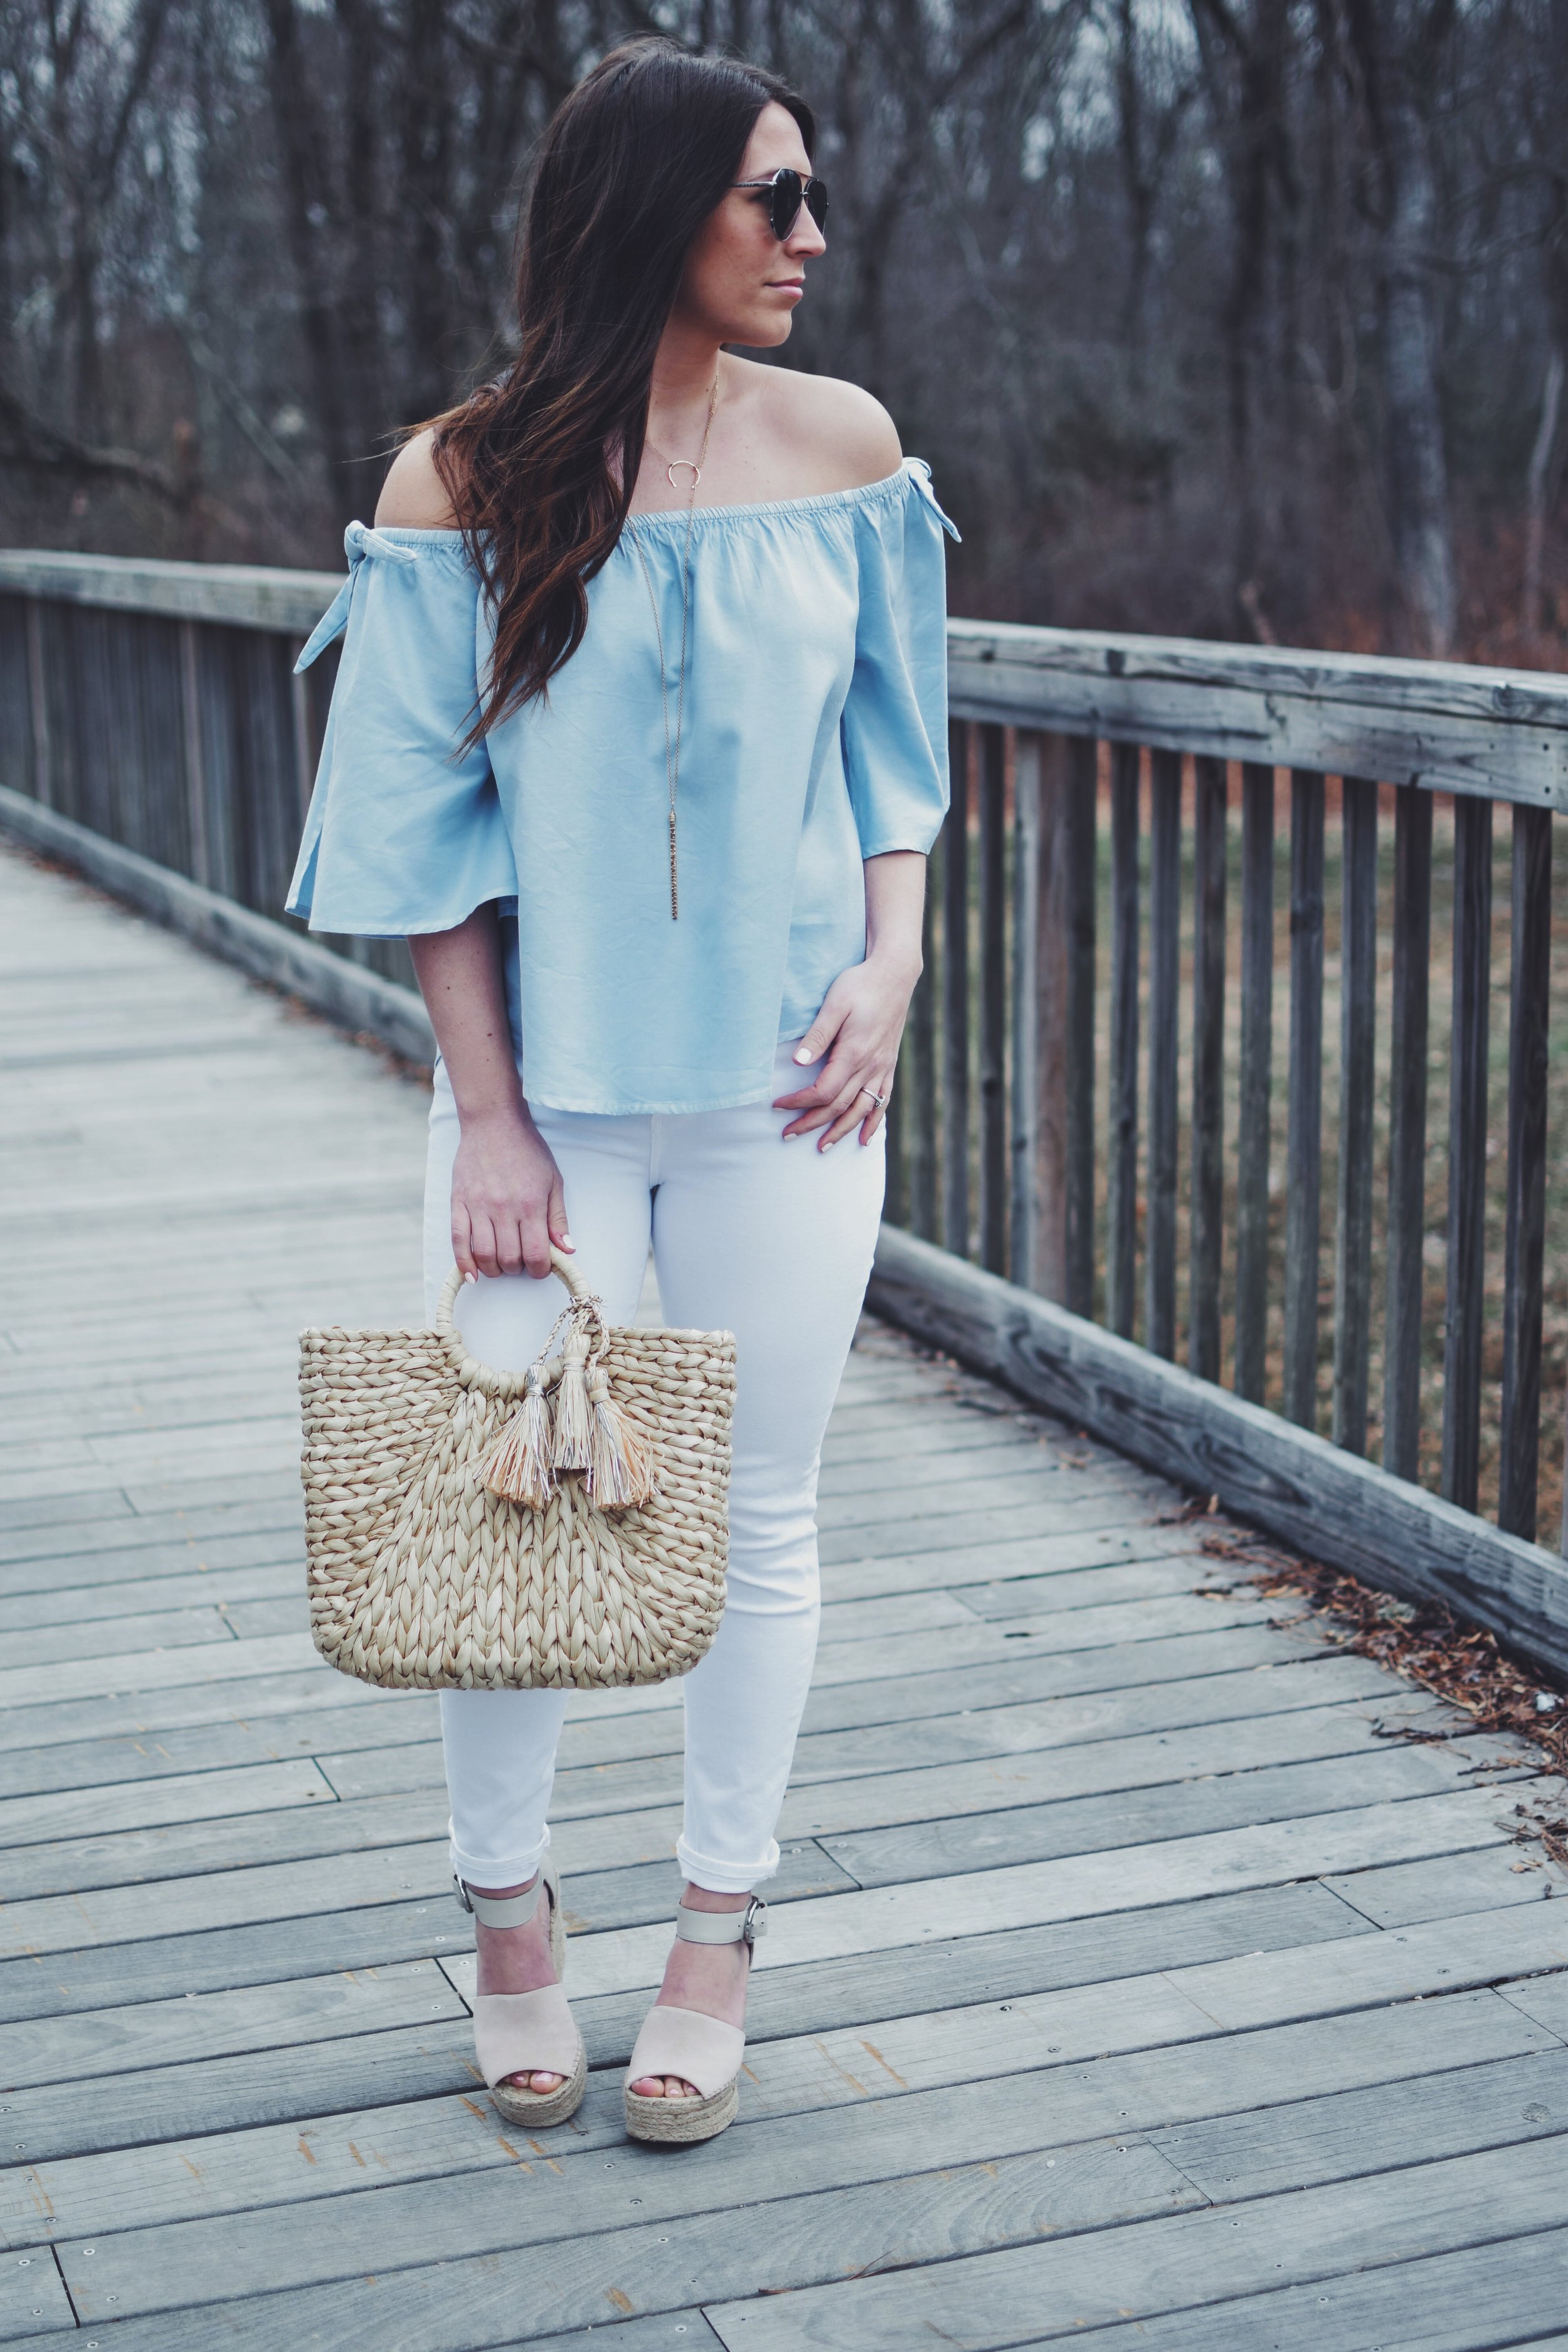 How to Style White Denim for Easter   Pine Barren Beauty   citizen's of humanity white denim, billabong off the shoulder chambray top, Marc fisher wedges, spring outfit idea, spring outfit inspiration, easter outfit idea, what to wear for easter, how to style a straw bag